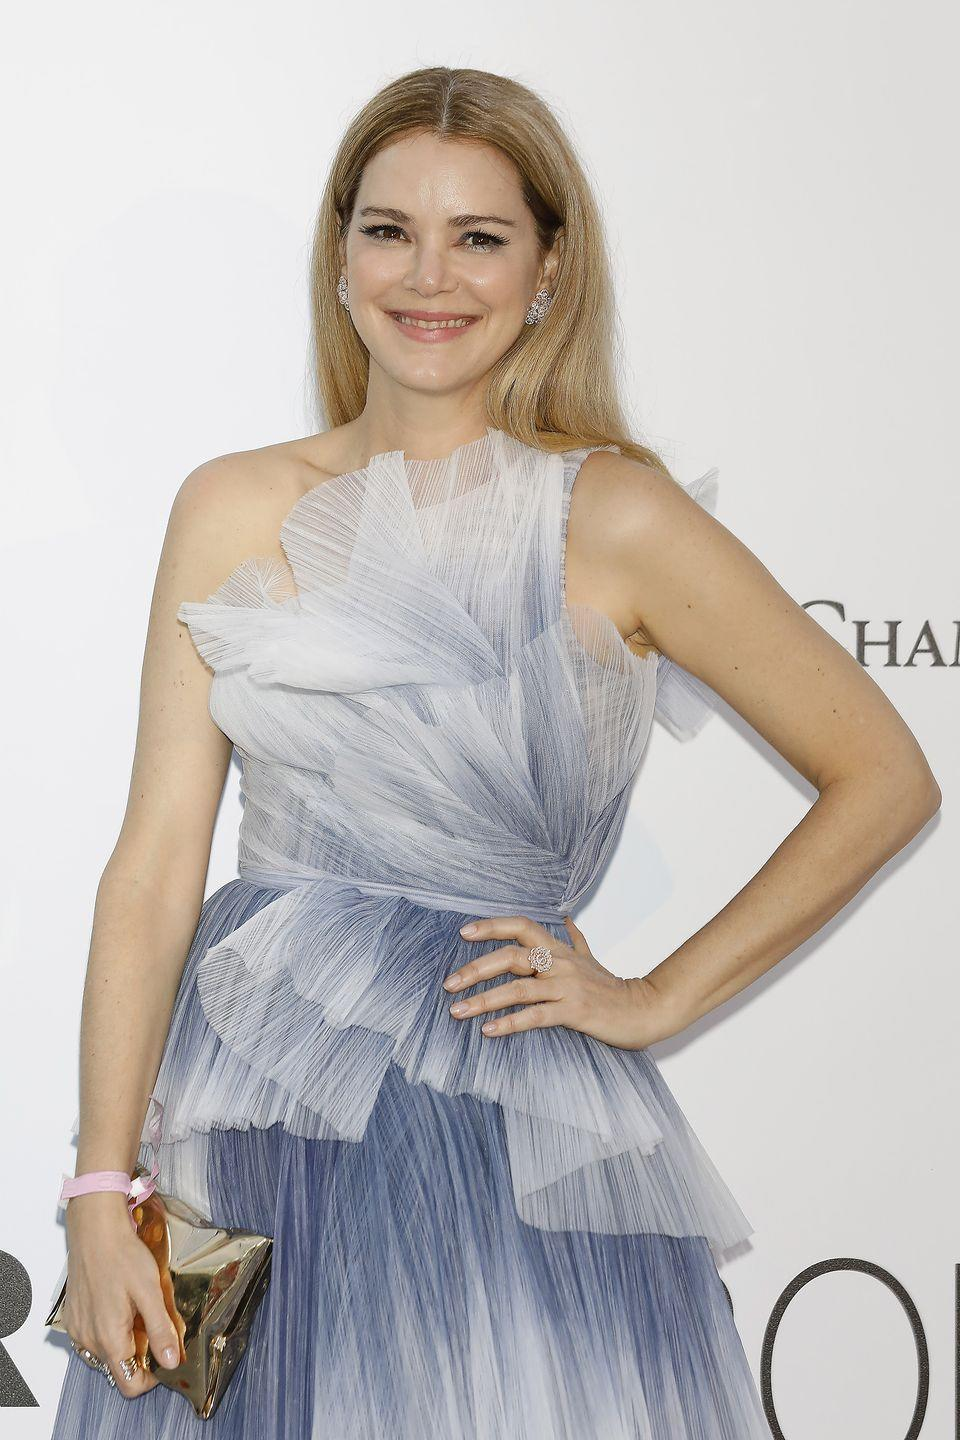 <p>After she made her TV debut, Barrett got her big break in the 1997 film, <em>Campfire Tales</em>. The actress has since appeared in <em>Bridget Jones: Edge of Reason</em> and <em>Ladder 49, </em>and earned guest spots on TV series like <em>Suits </em>and <em>Bloodline</em>. In 2018, she attended the royal wedding with her husband, Gabriel Macht, who co-starred on <em>Suits </em>with Meghan Markle.</p>